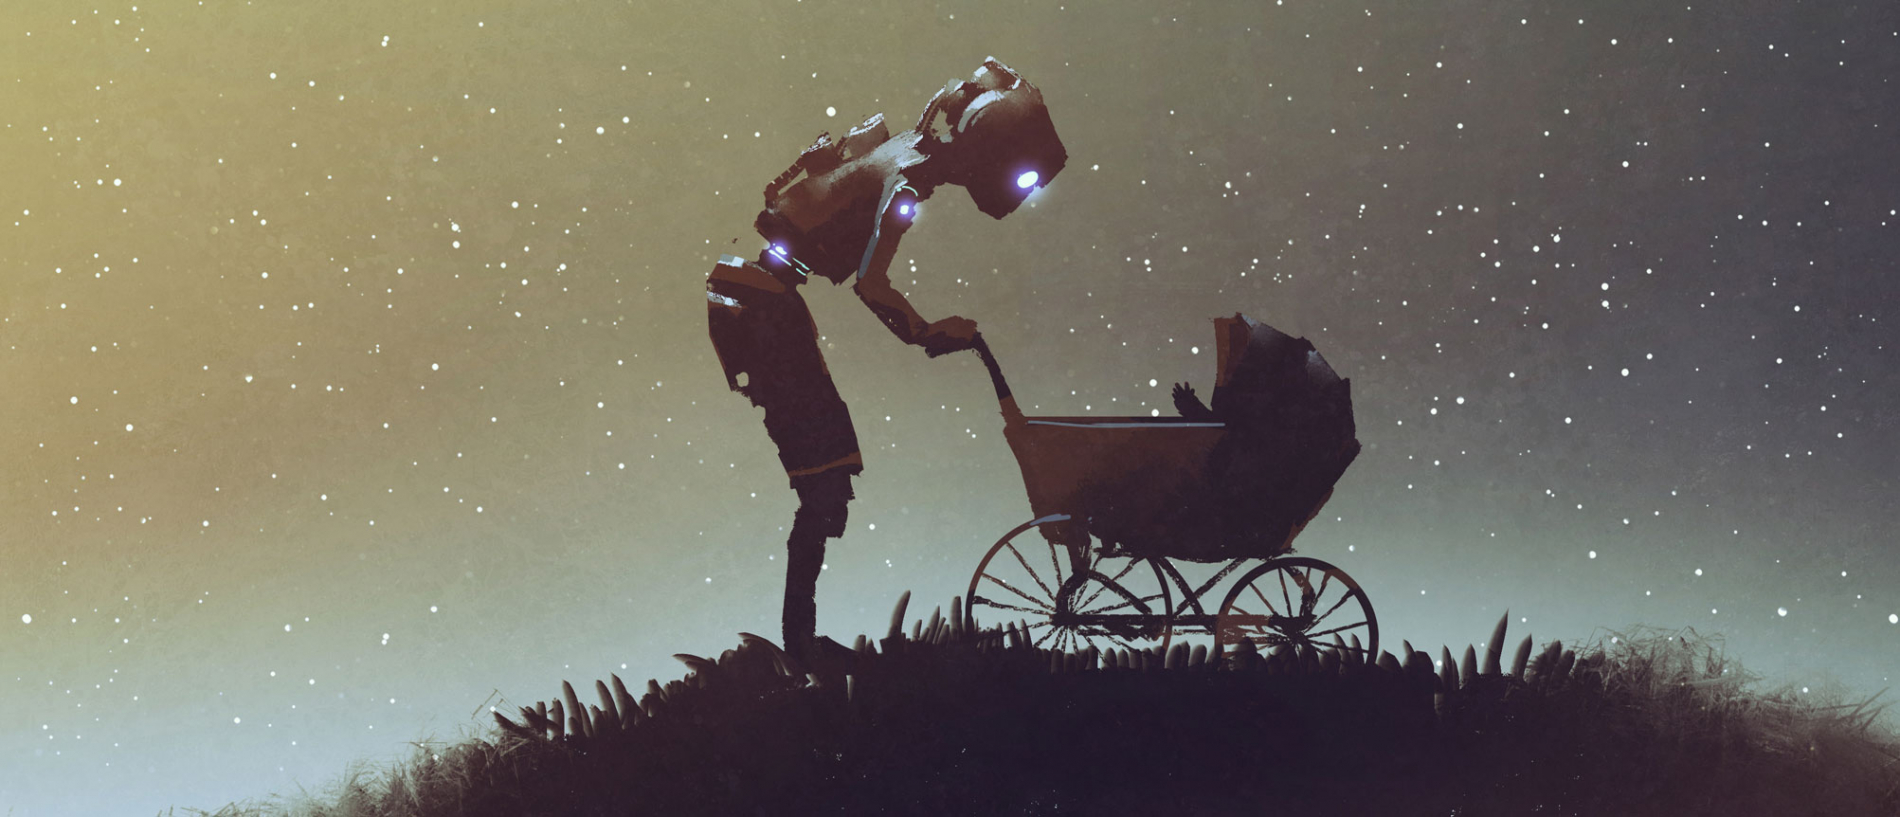 Robot with stroller